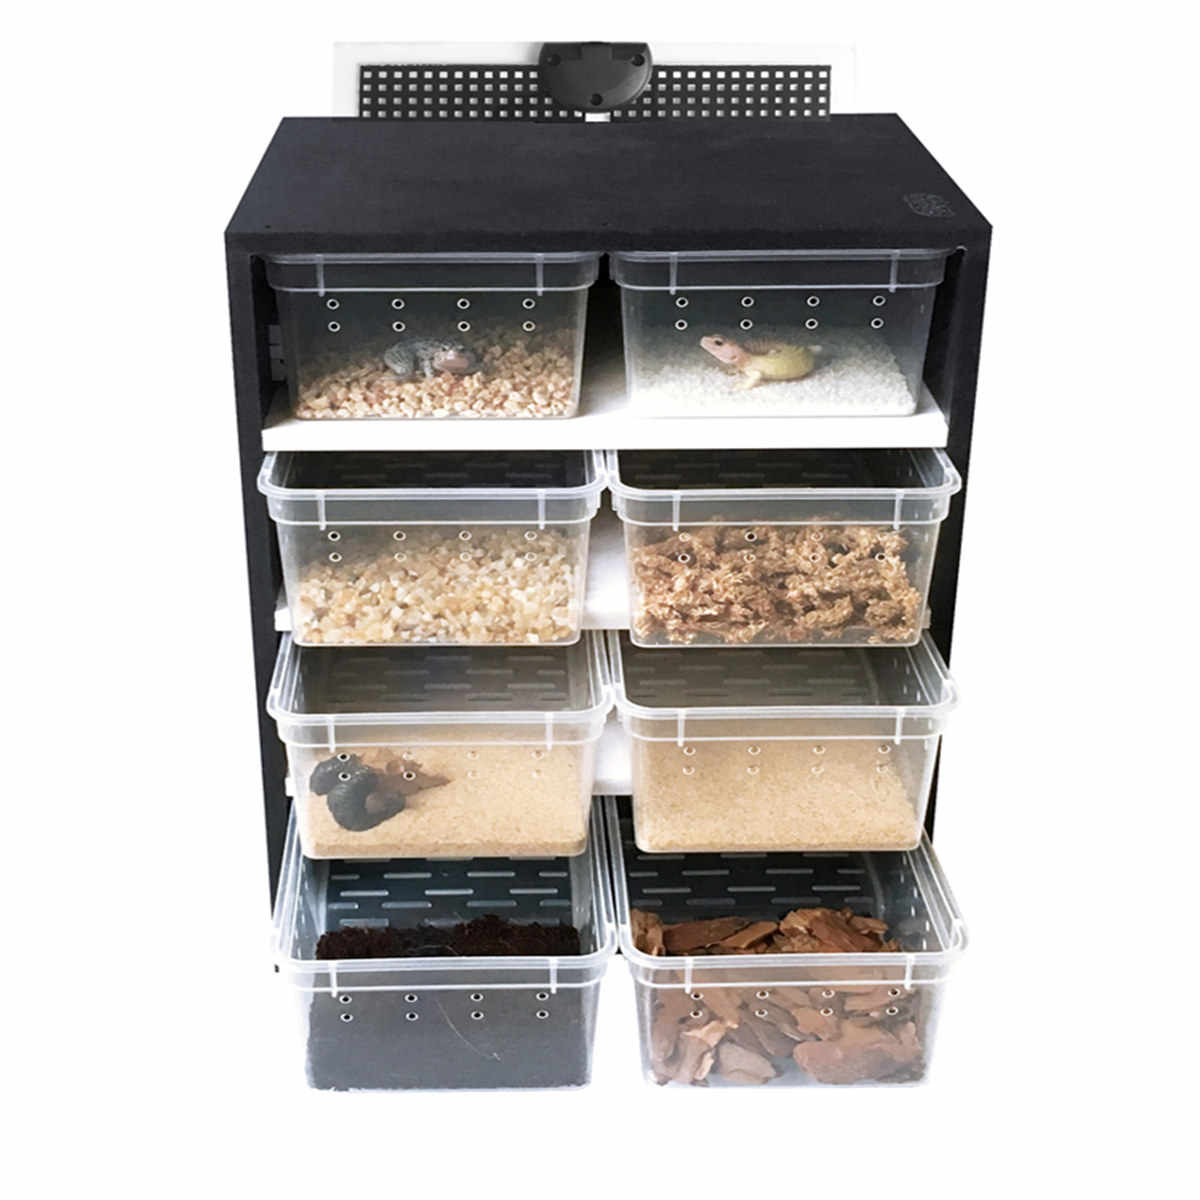 4 Layers Acrylic Feeding Box Terrarium Reptiles Breeding Tank Insect Lizards Pet Cage House Drawer with Hygrometer Heating Pad